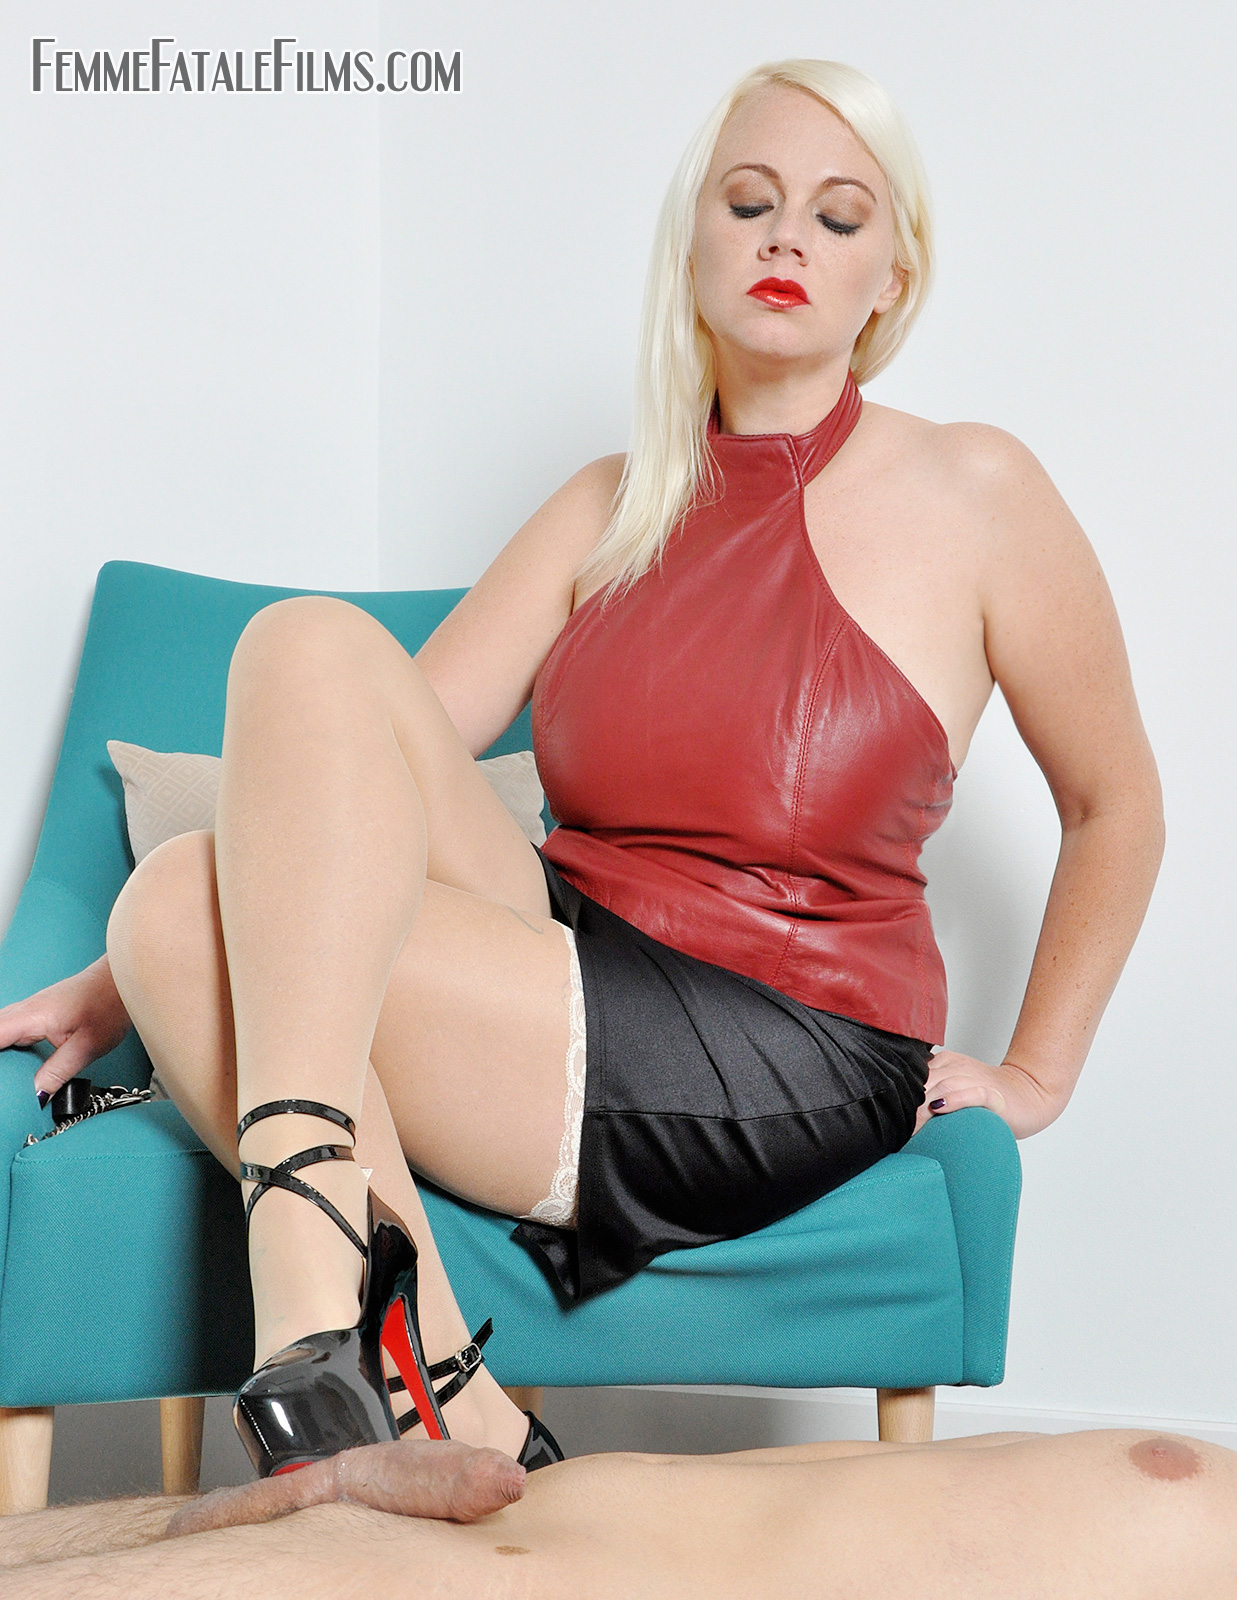 Ball Busting Mistress Heather Divine as many of you know is one of Mistress Heather Divine's most favourite activities, he wanted and needed more punishment